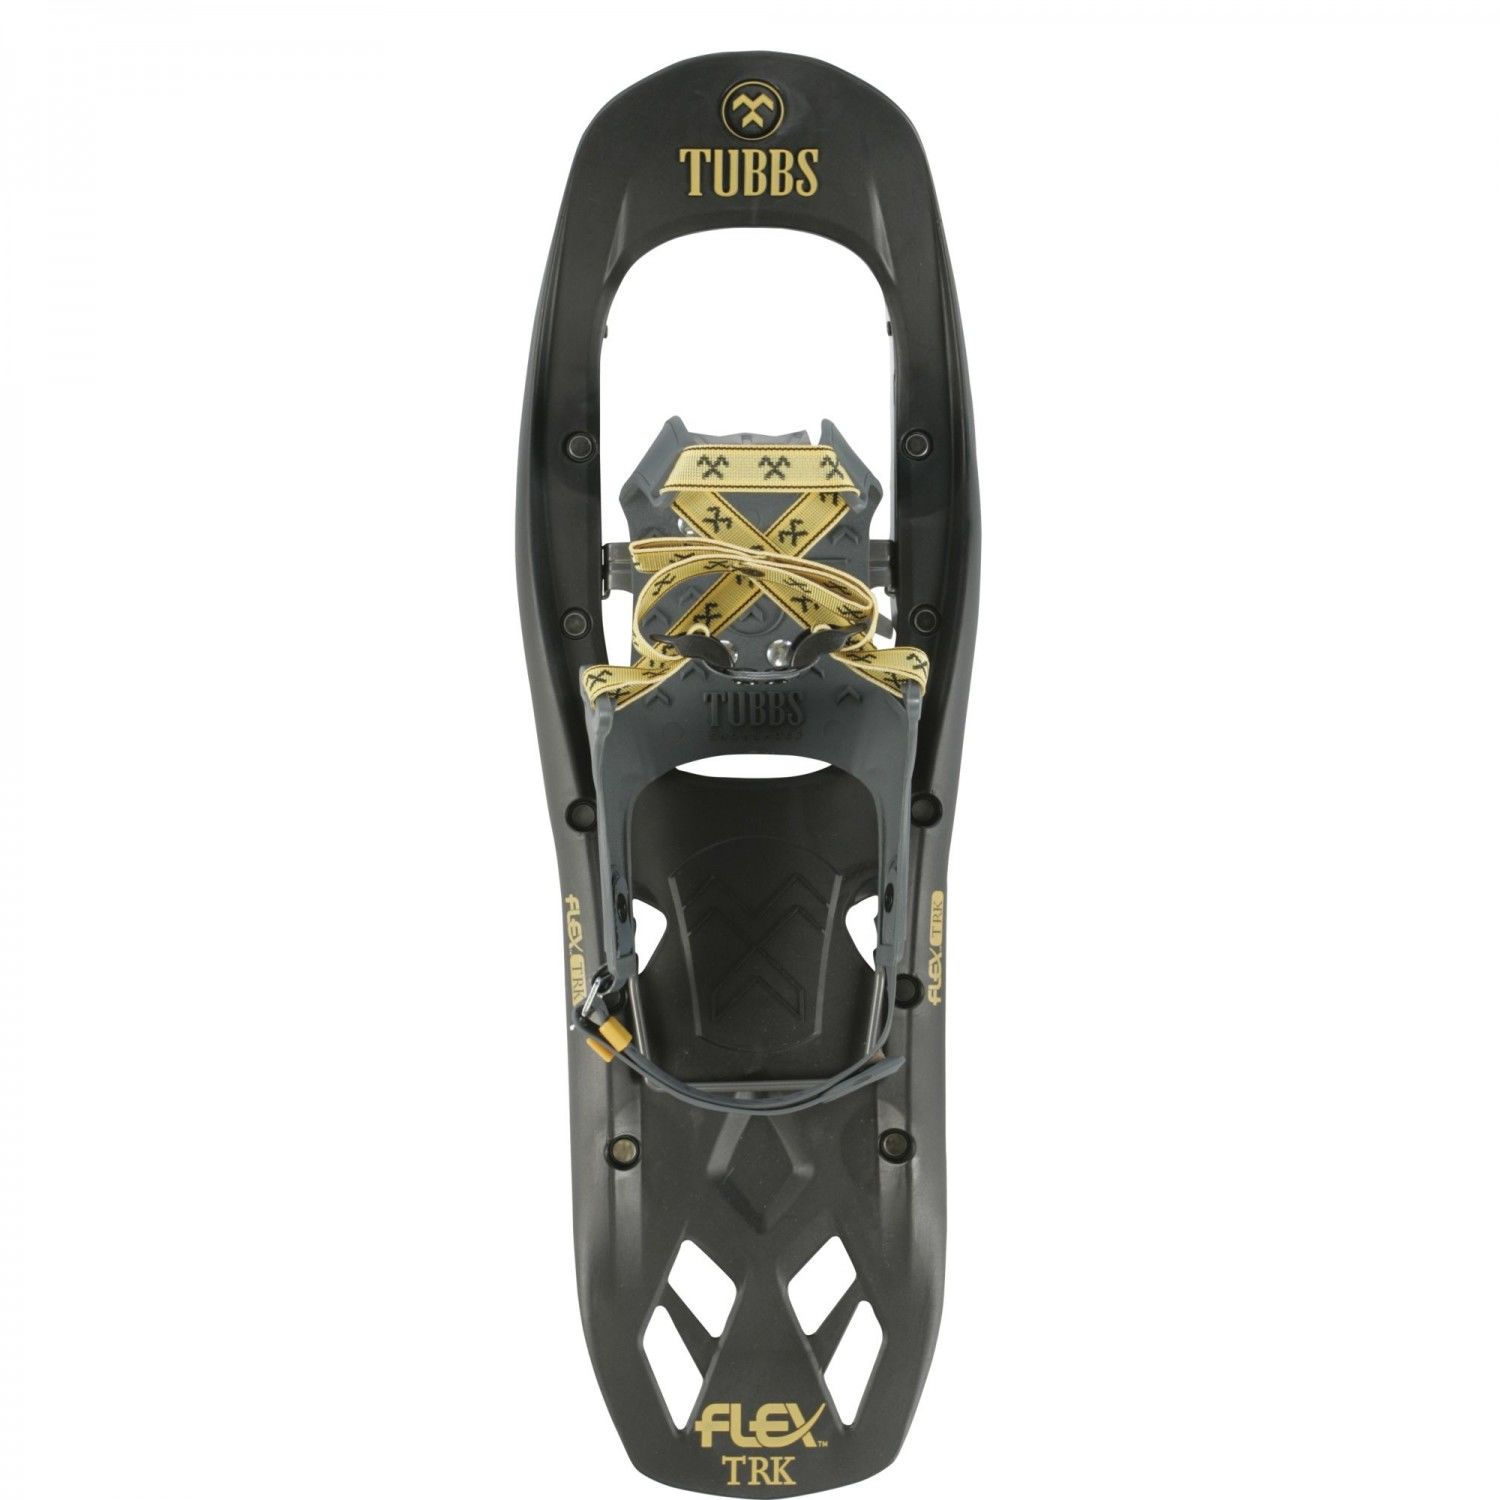 Tubbs Flex TRK 24 Snowshoe Schwarz, Male One Size -Farbe Black, One Size